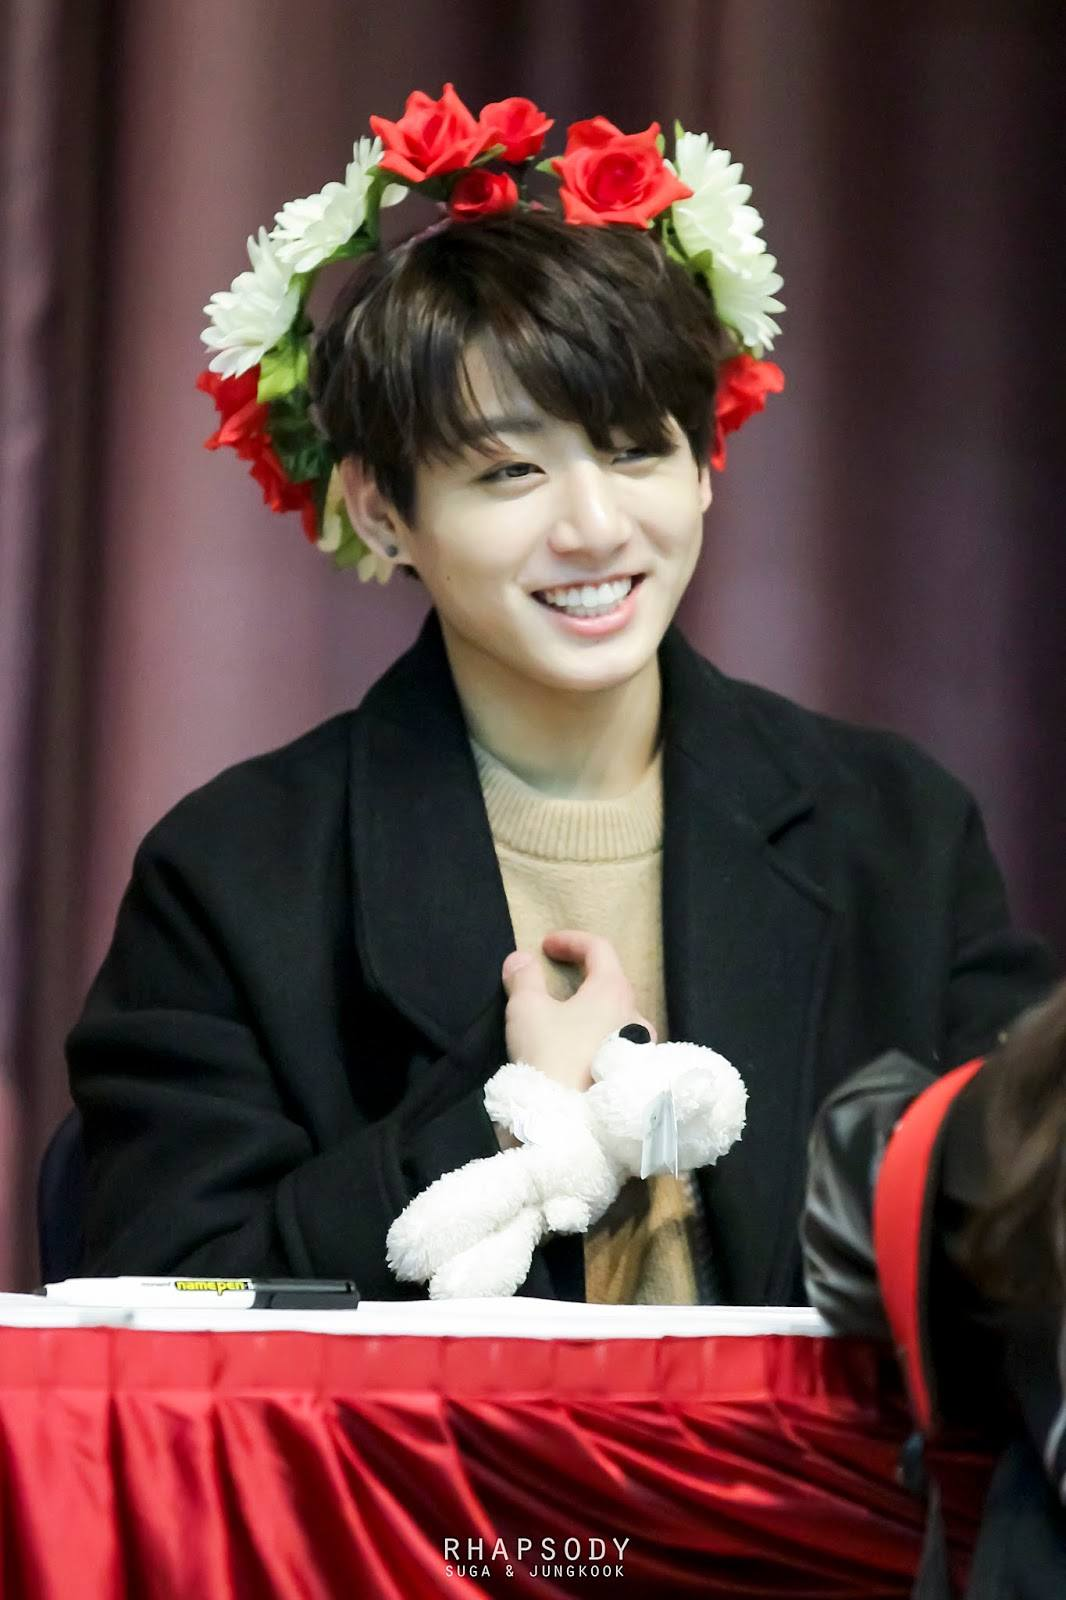 Jungkook and Yugyeom Have Adorable Twin Smiles